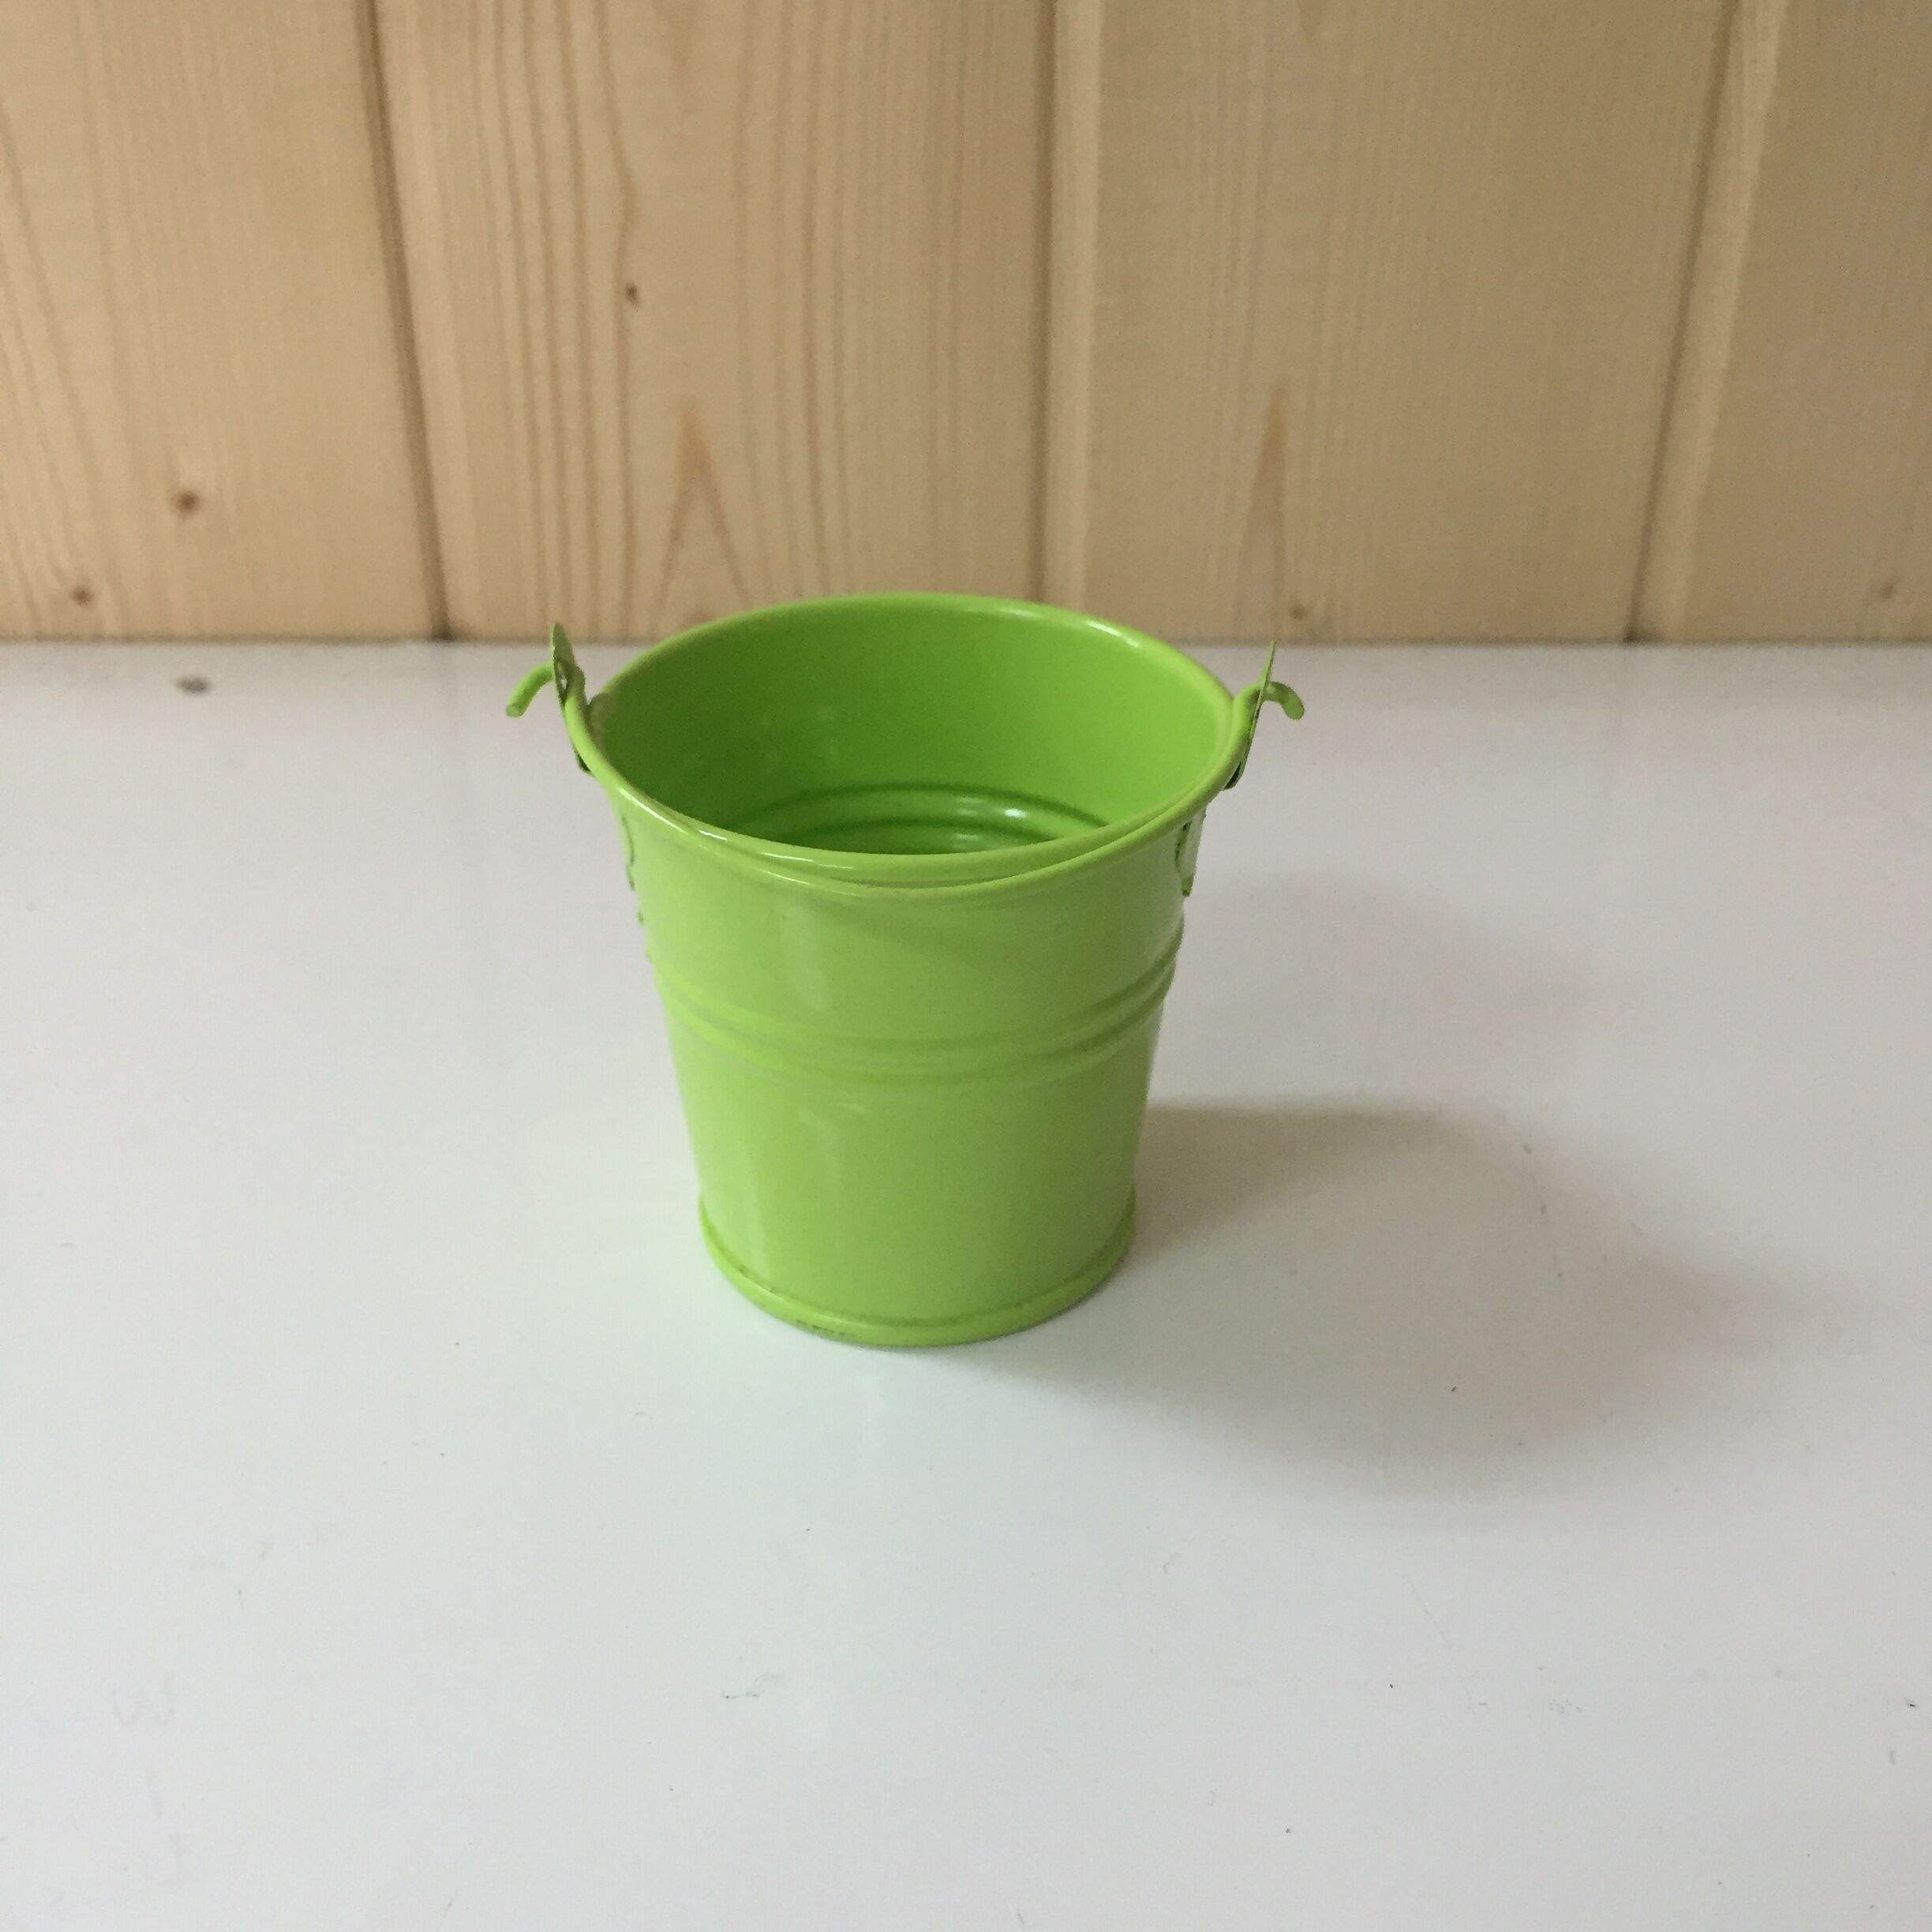 Garden Flower Planter Mini Galvanized Metal Flower Bucket Home Decoration